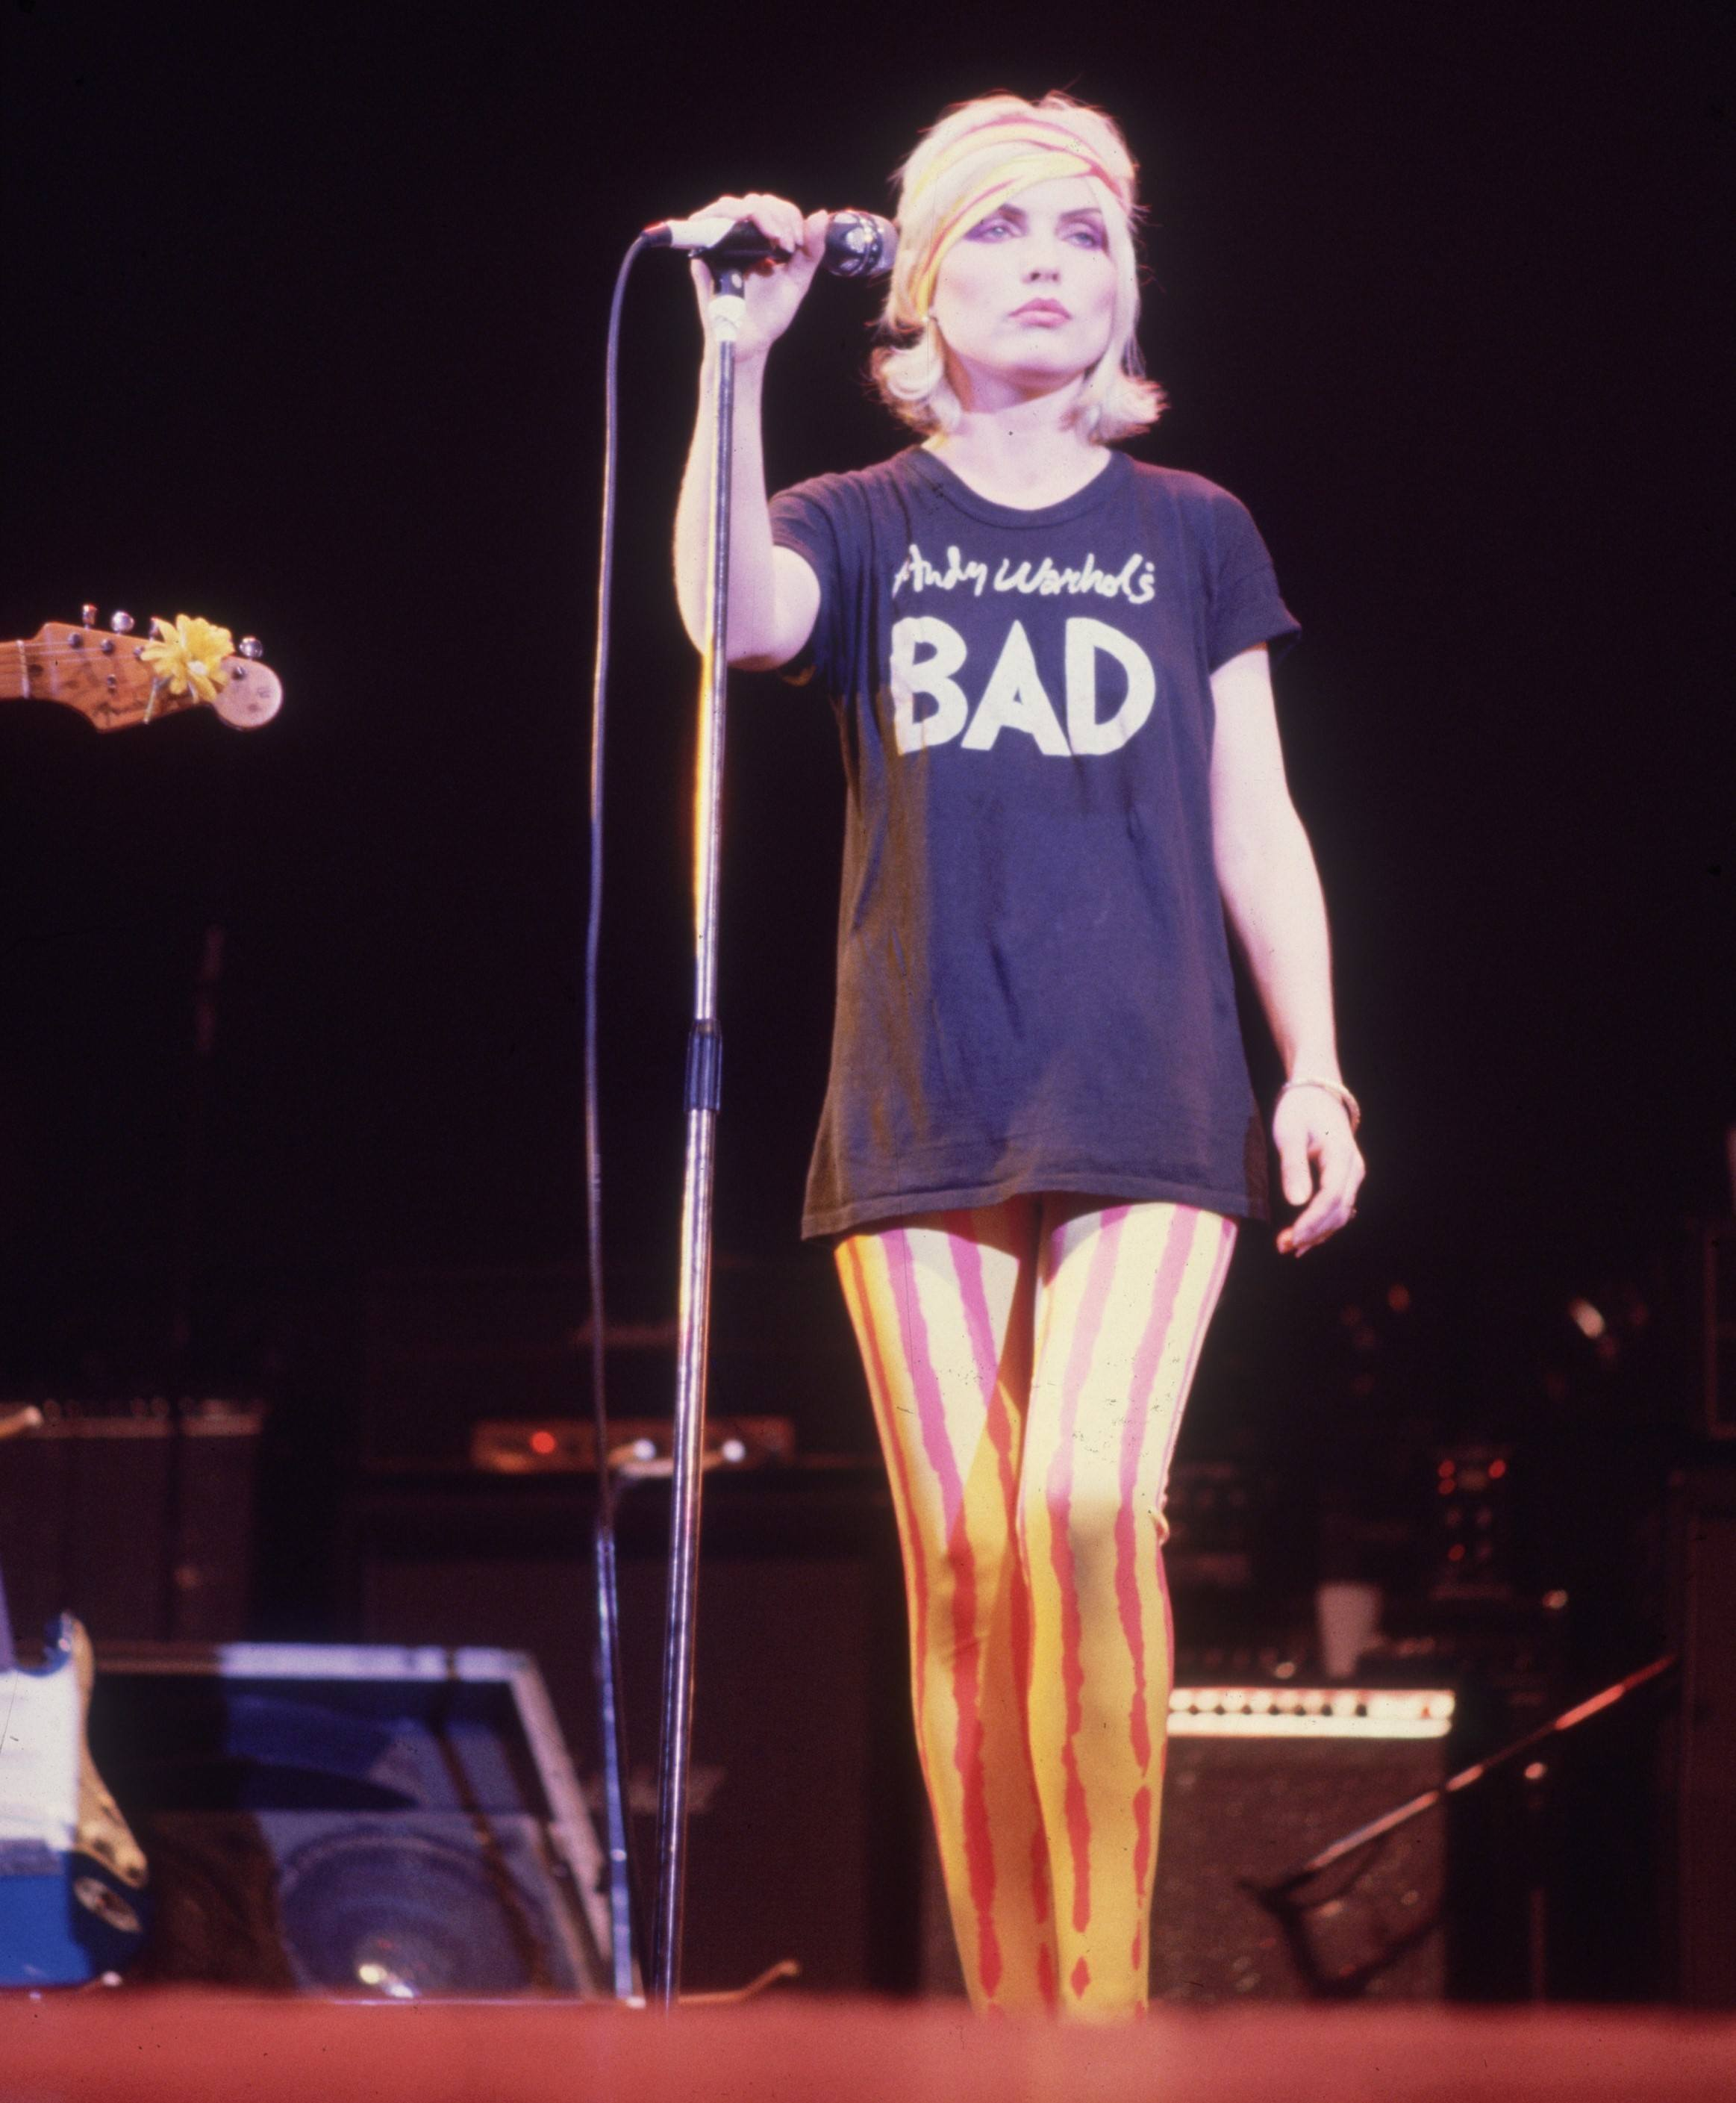 Debbie Harry, the American model and lead singer of the new wave band, Blondie, on stage.